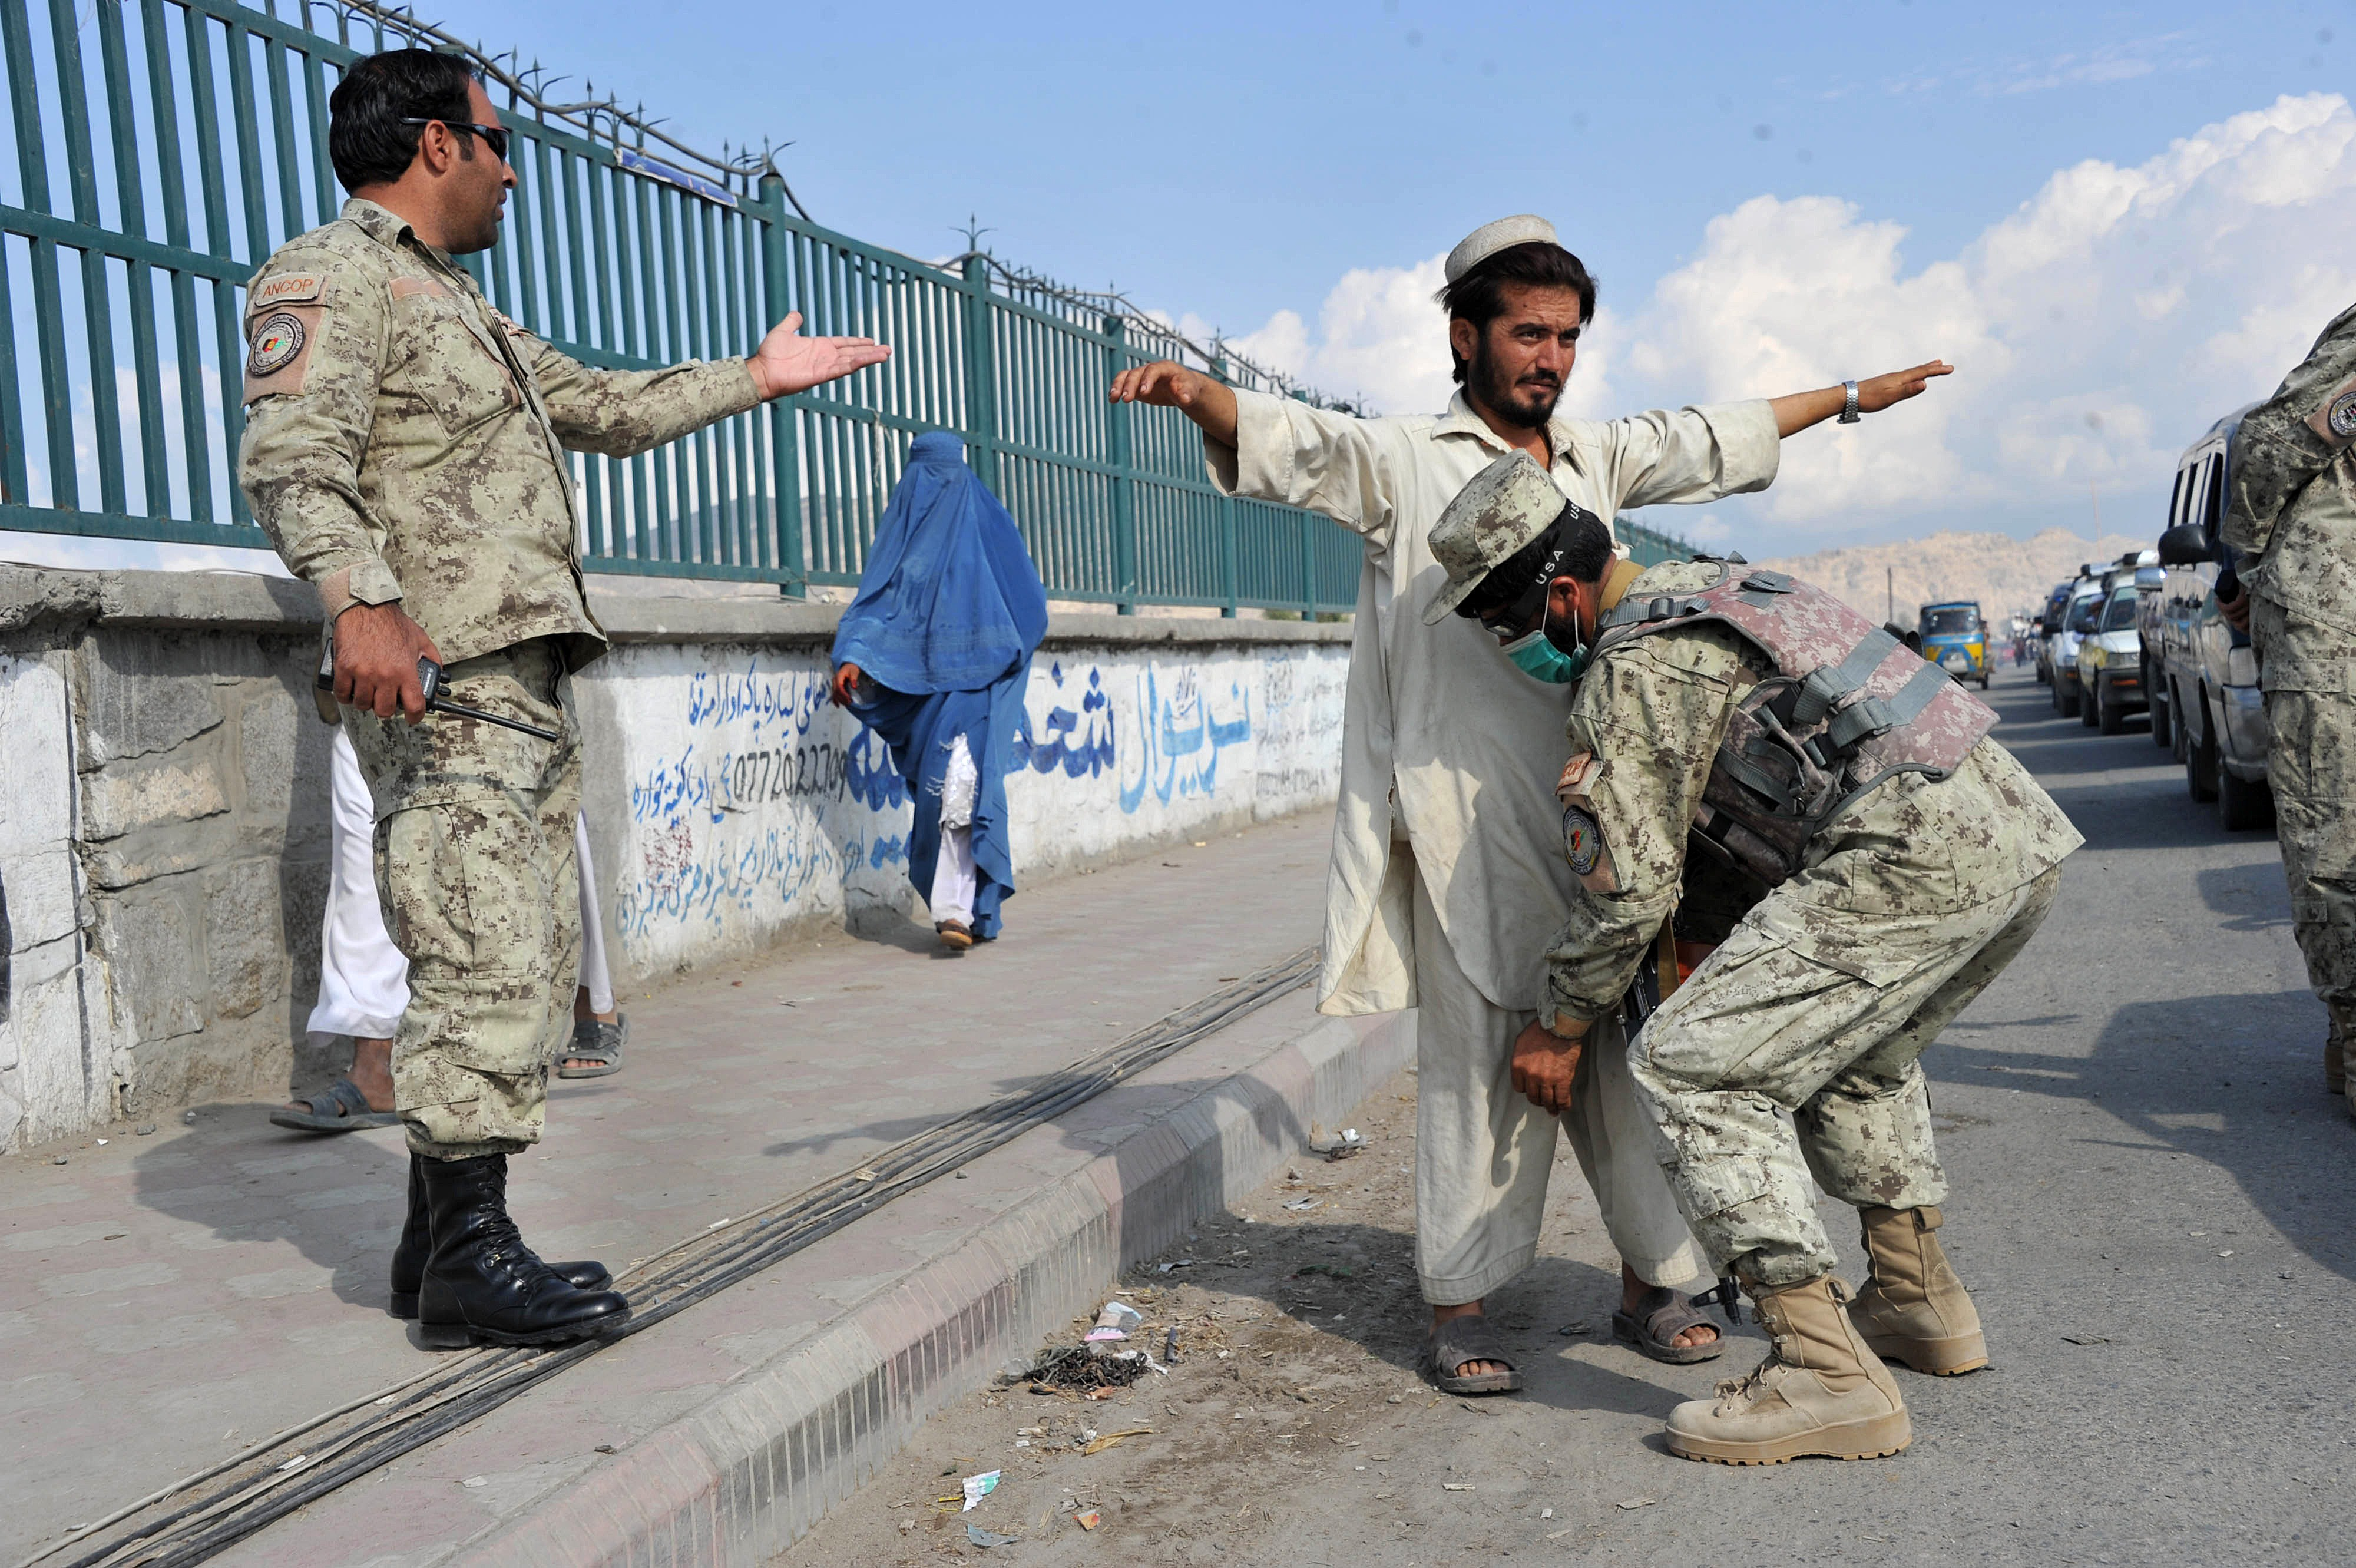 Afghan security personel check passengers and cars at a checkpoint in the city of Jalalabad in Nangarhar province on October 20, 2012. (AFP Photo/ Noorullah Shirzada)